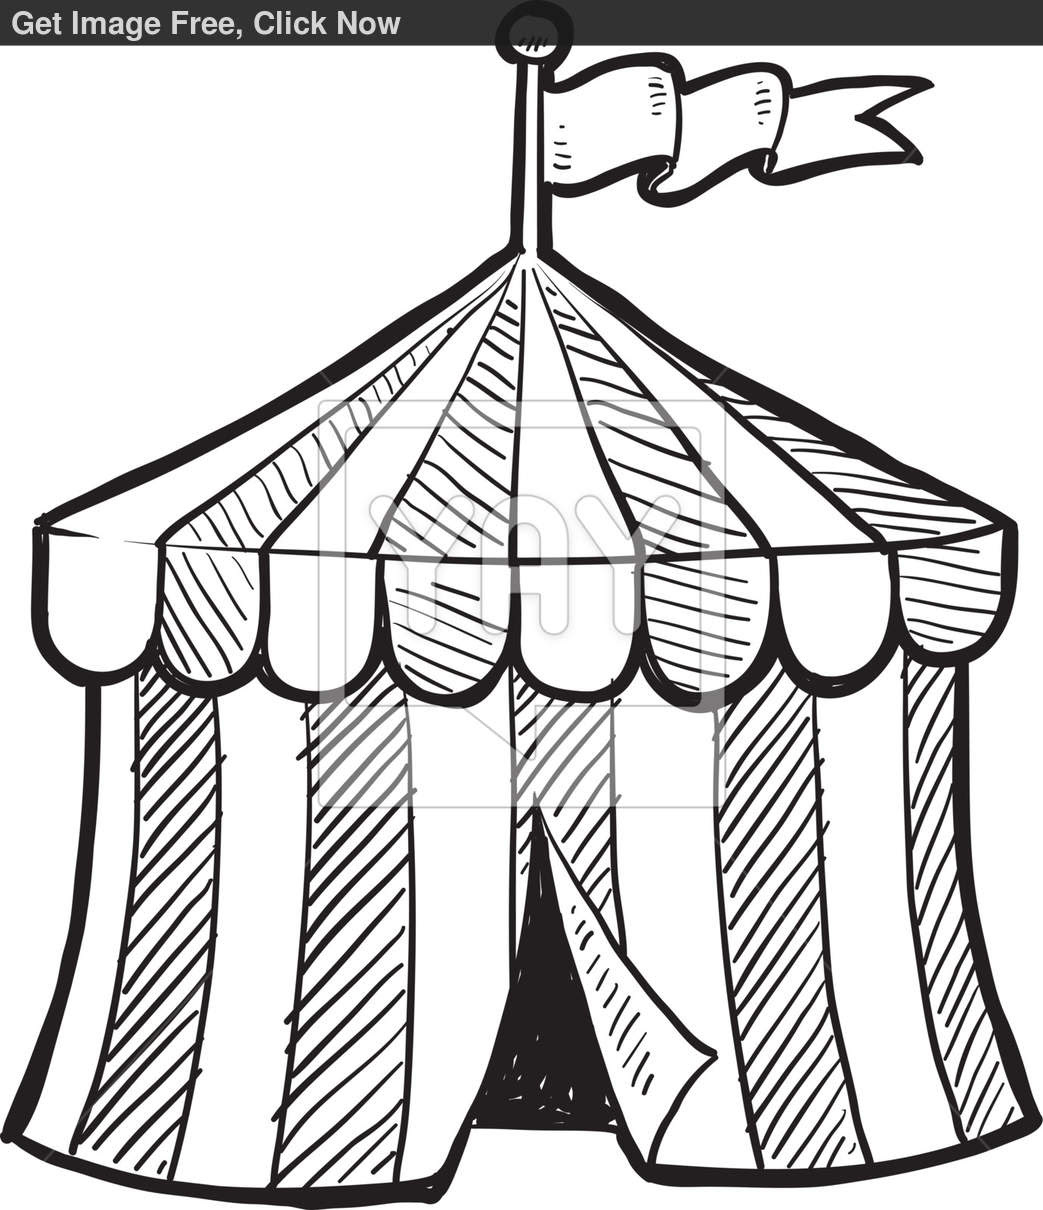 coloring pages : Preschool Summer Coloring Pages Unique Tents ... | 1210x1043